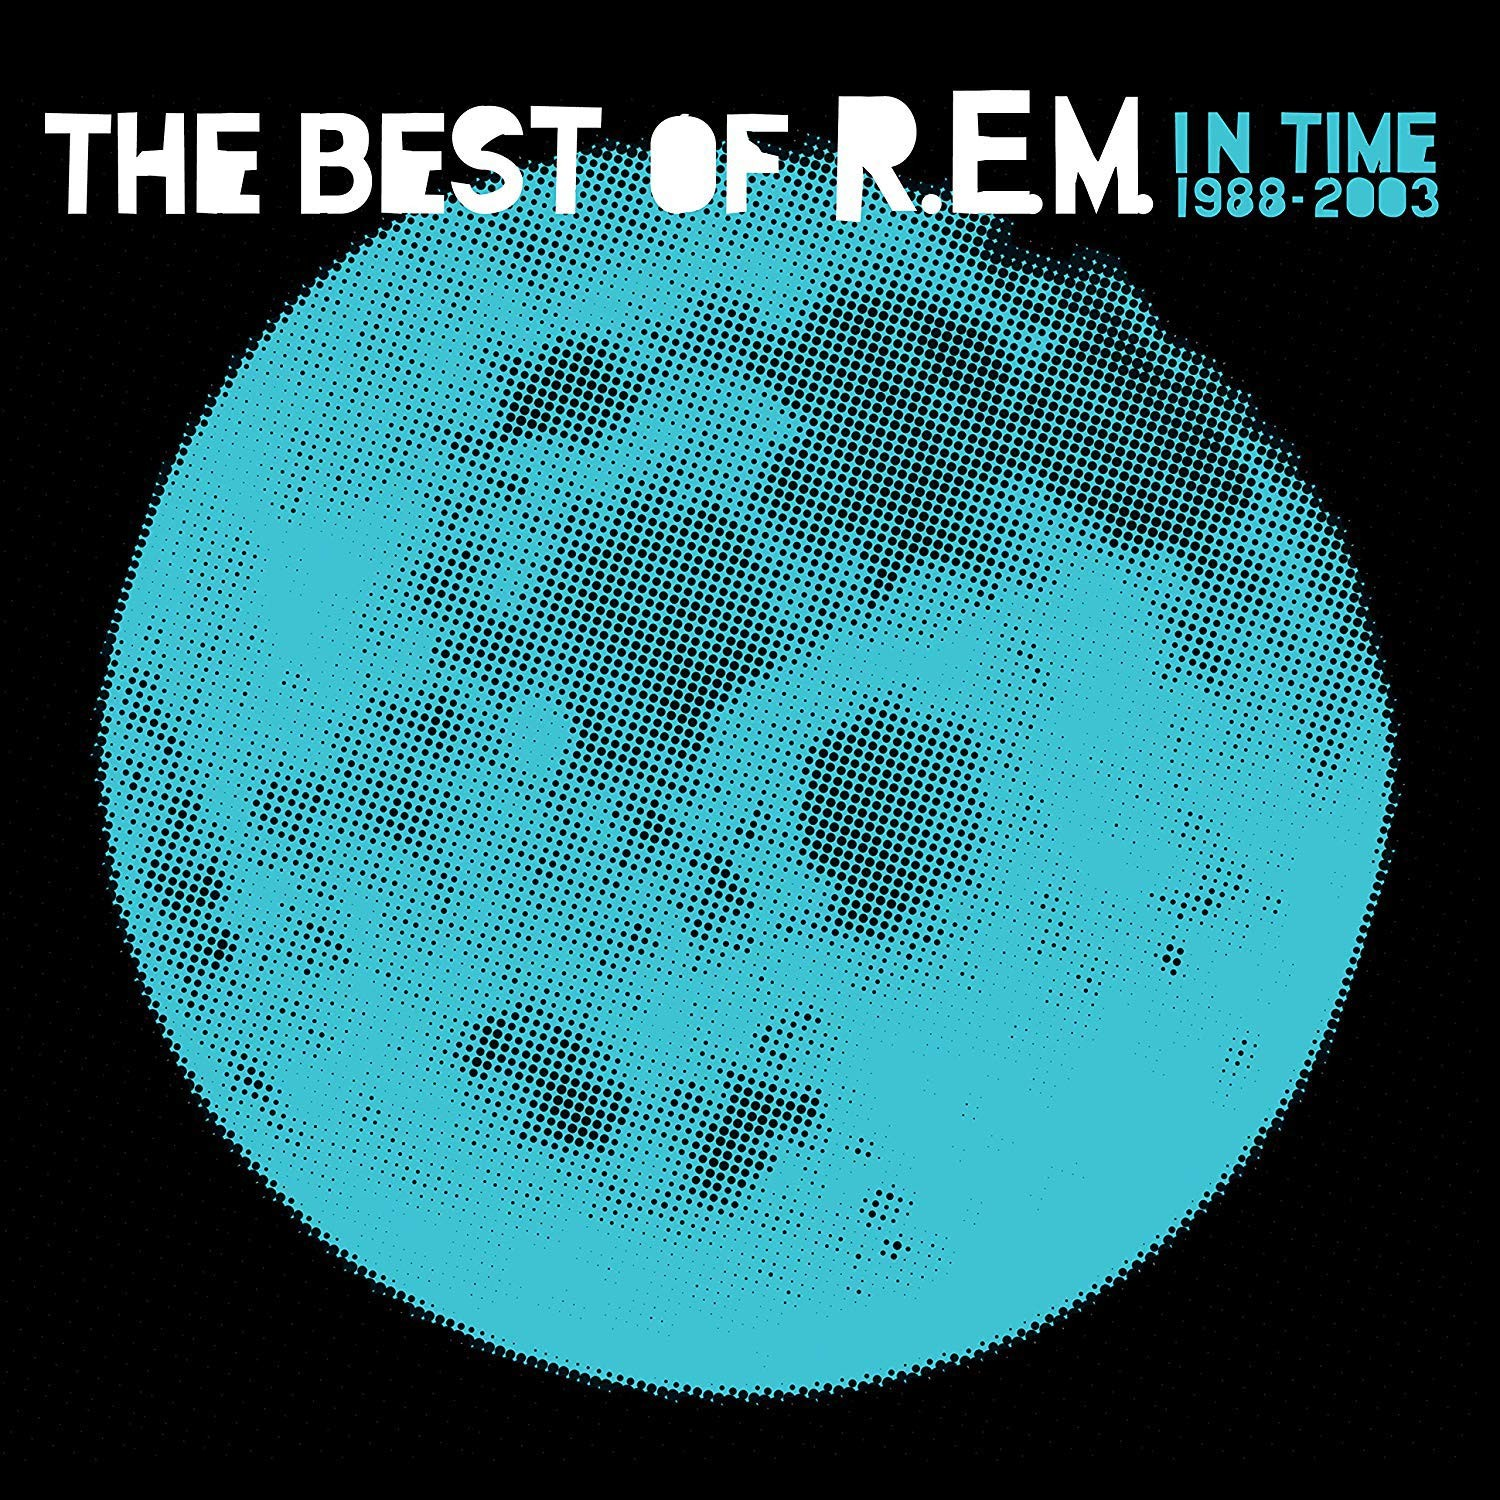 R.E.M. - In Time: The Best Of R.E.M. 1988-2003 2XLP Vinyl